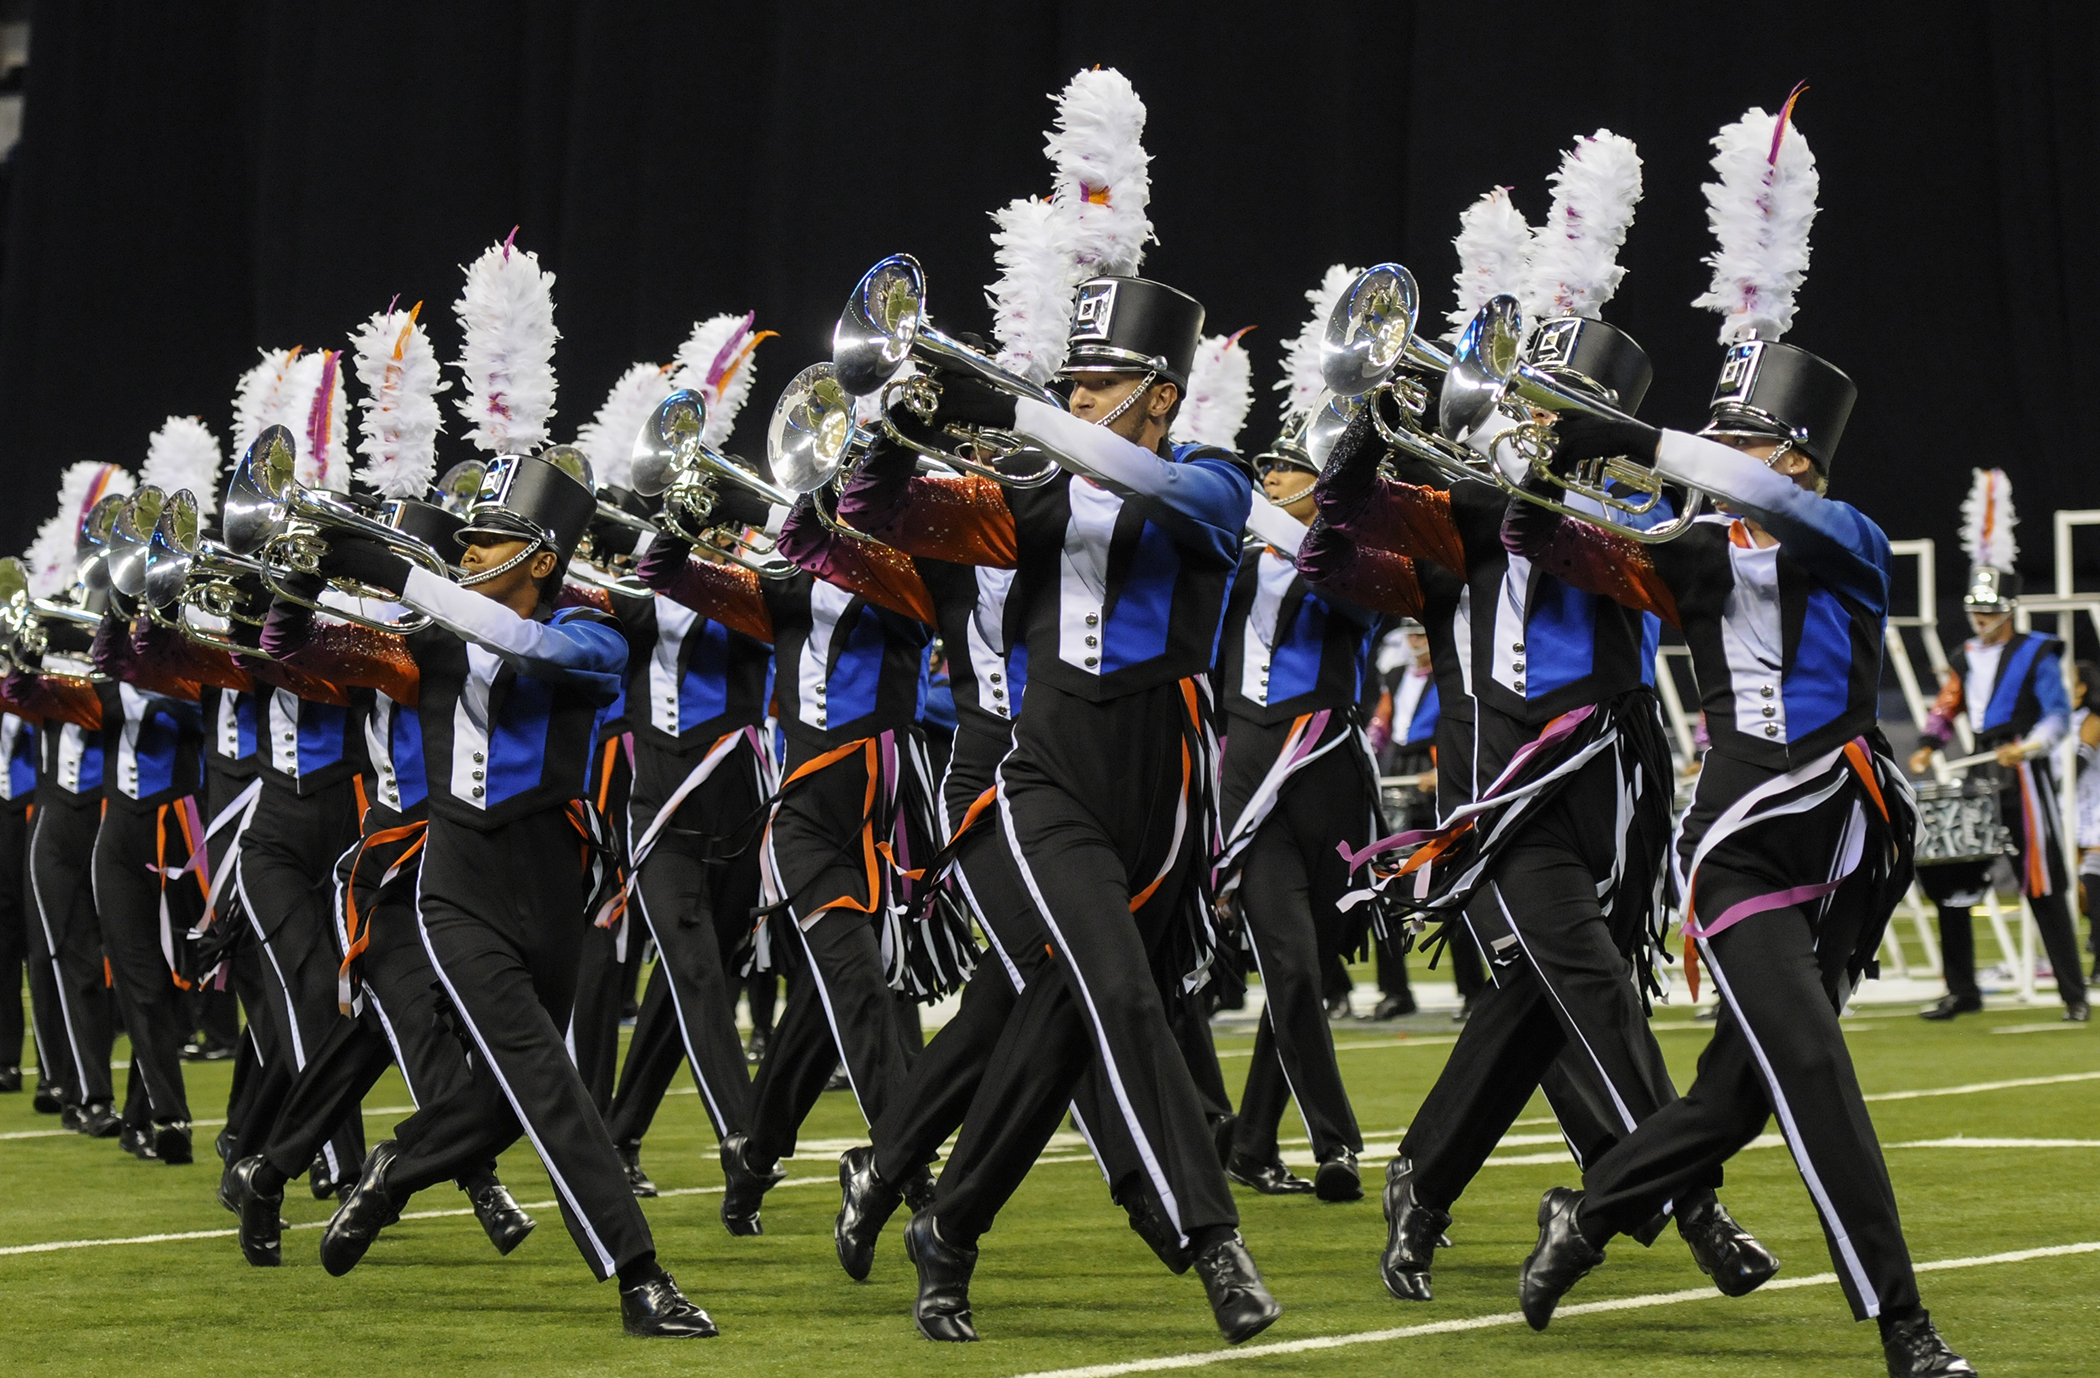 How Marching Band Changed My Life